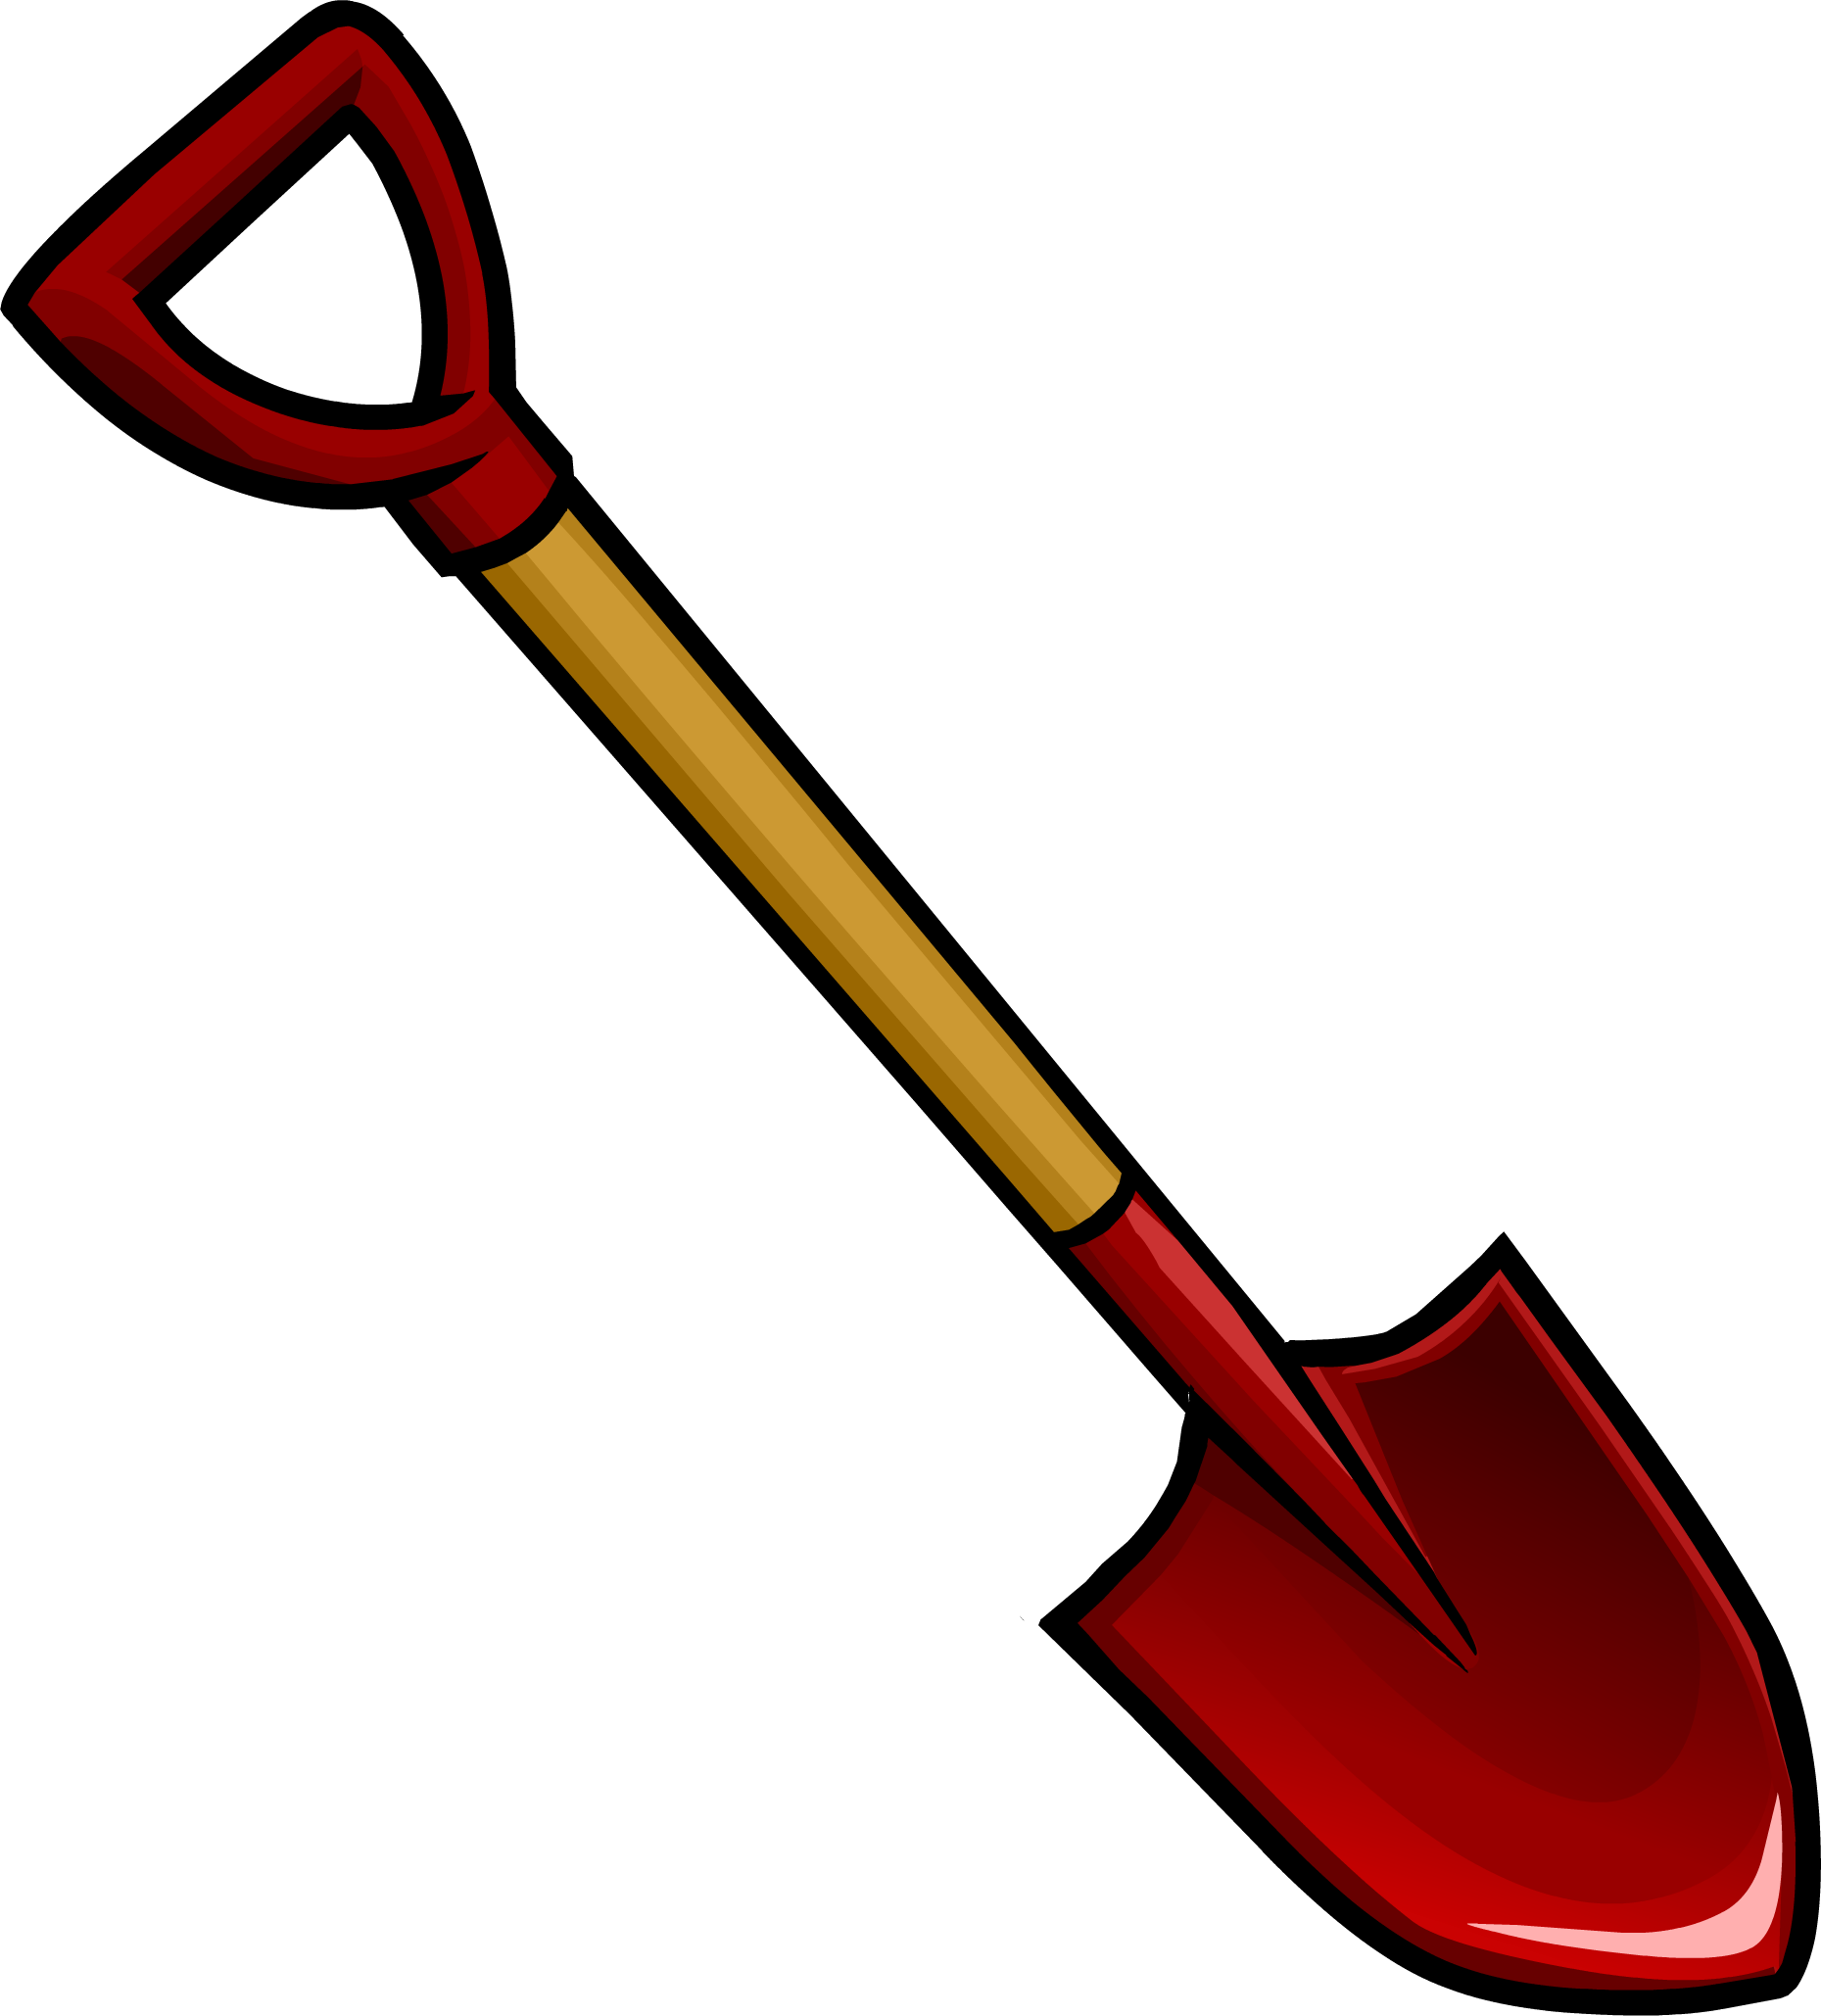 Garden Shovel - Club Penguin Wiki - The free, editable encyclopedia ...